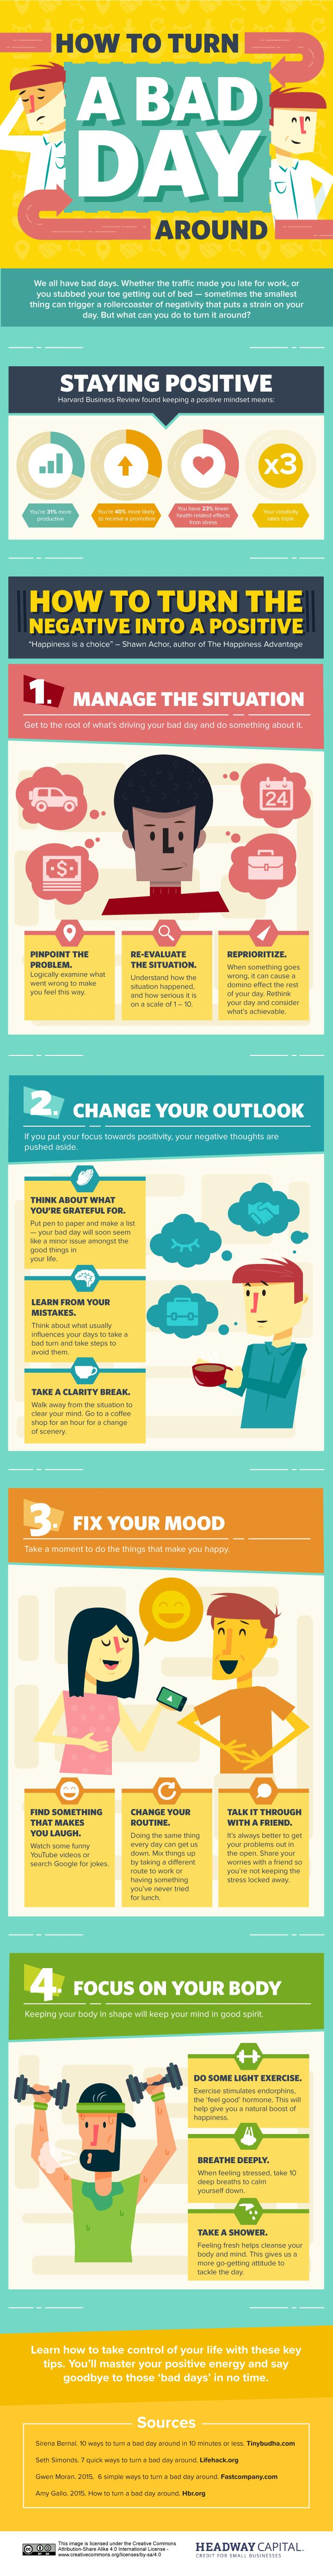 How to Turn a Bad Day Around [INFOGRAPHIC] (by @HubSpot)